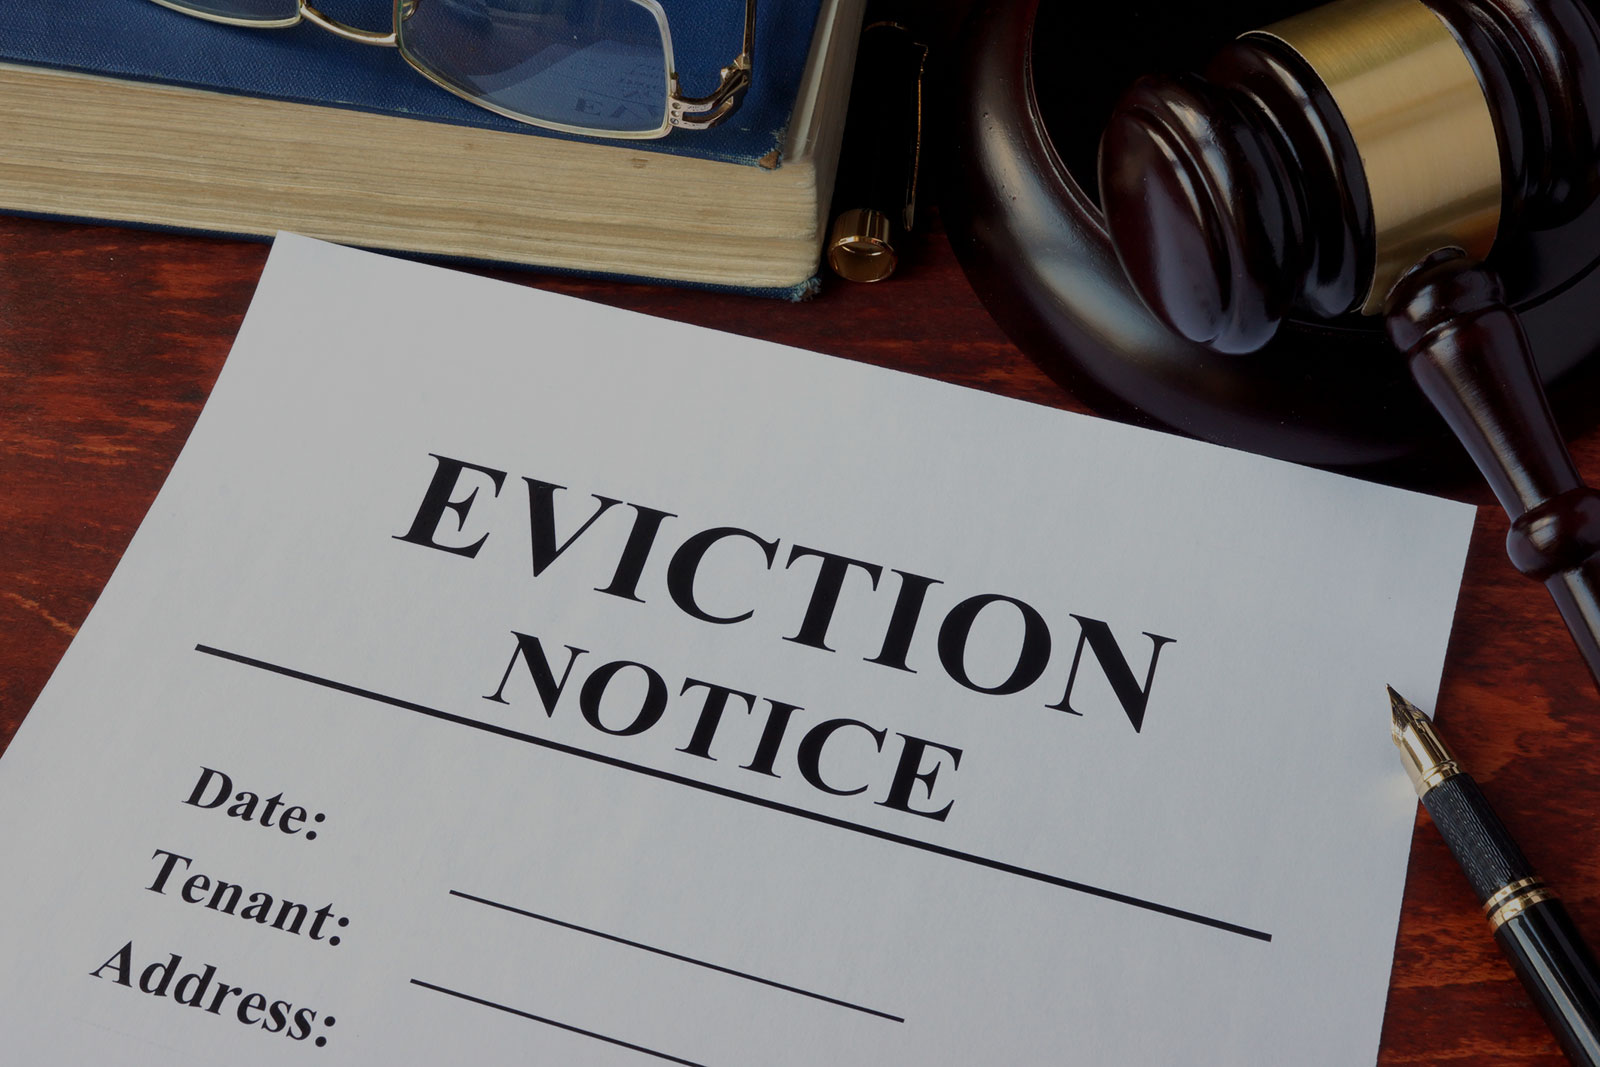 Landlord/Tenant Header Background - Eviction Notice with Judge Mallet